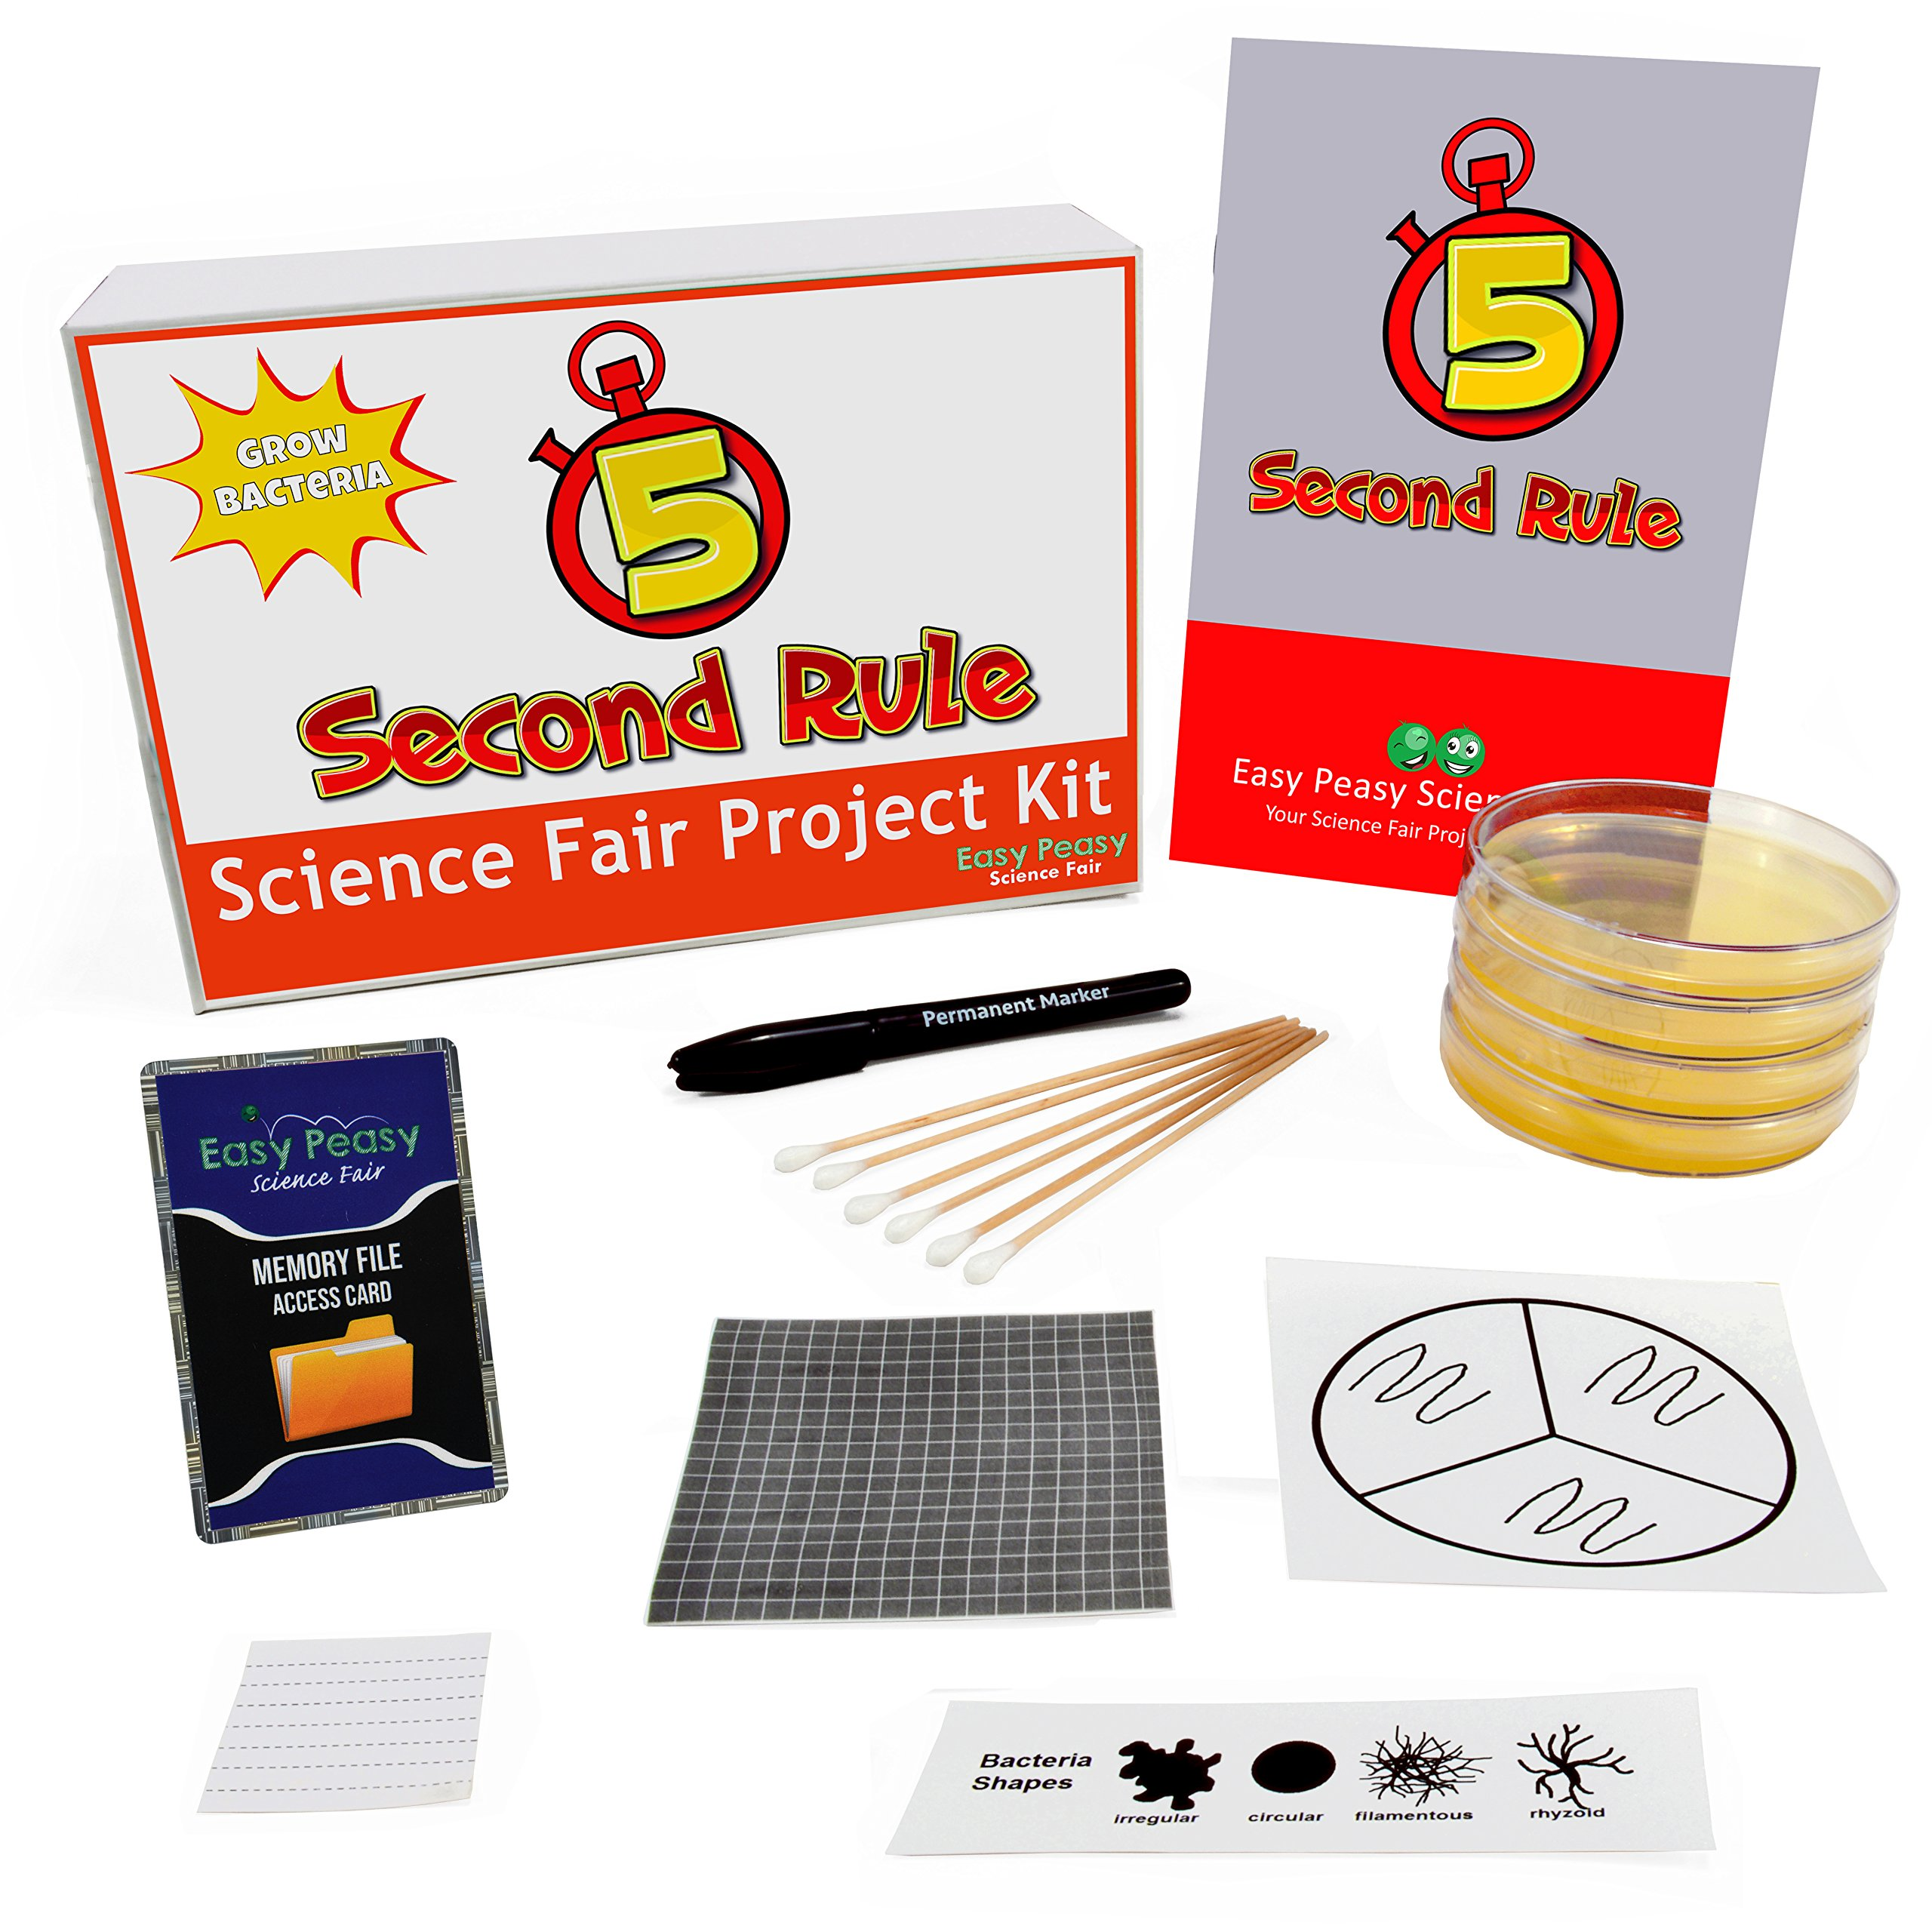 The 5 Second Rule Science Fair Project Kit - Grow Bacteria - Top Science Learning Kit